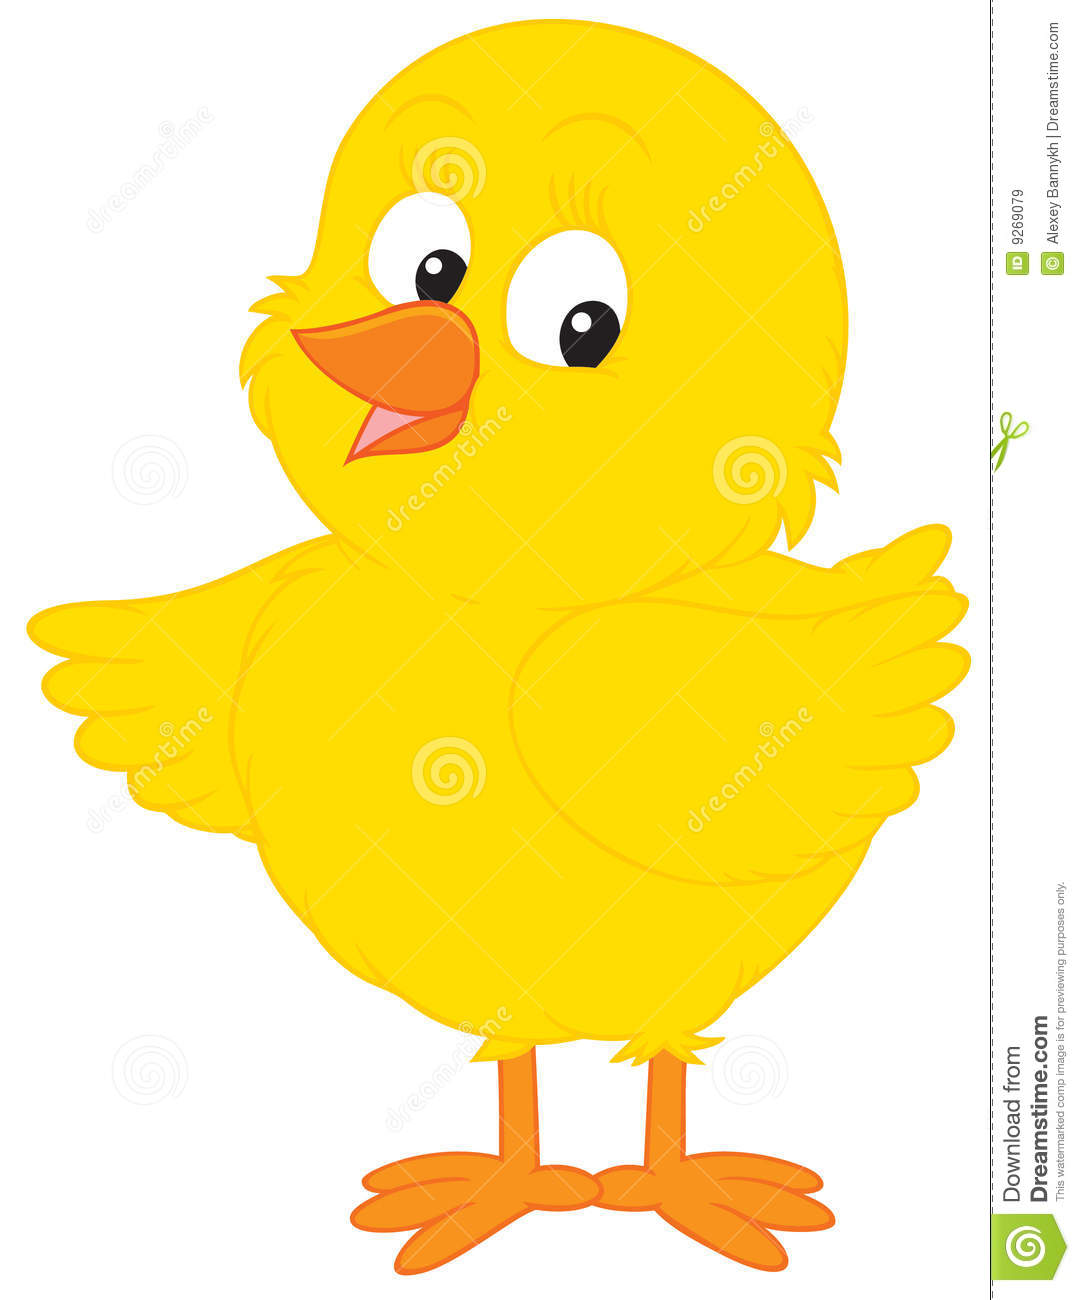 Chick Clipart & Chick Clip Art Images.